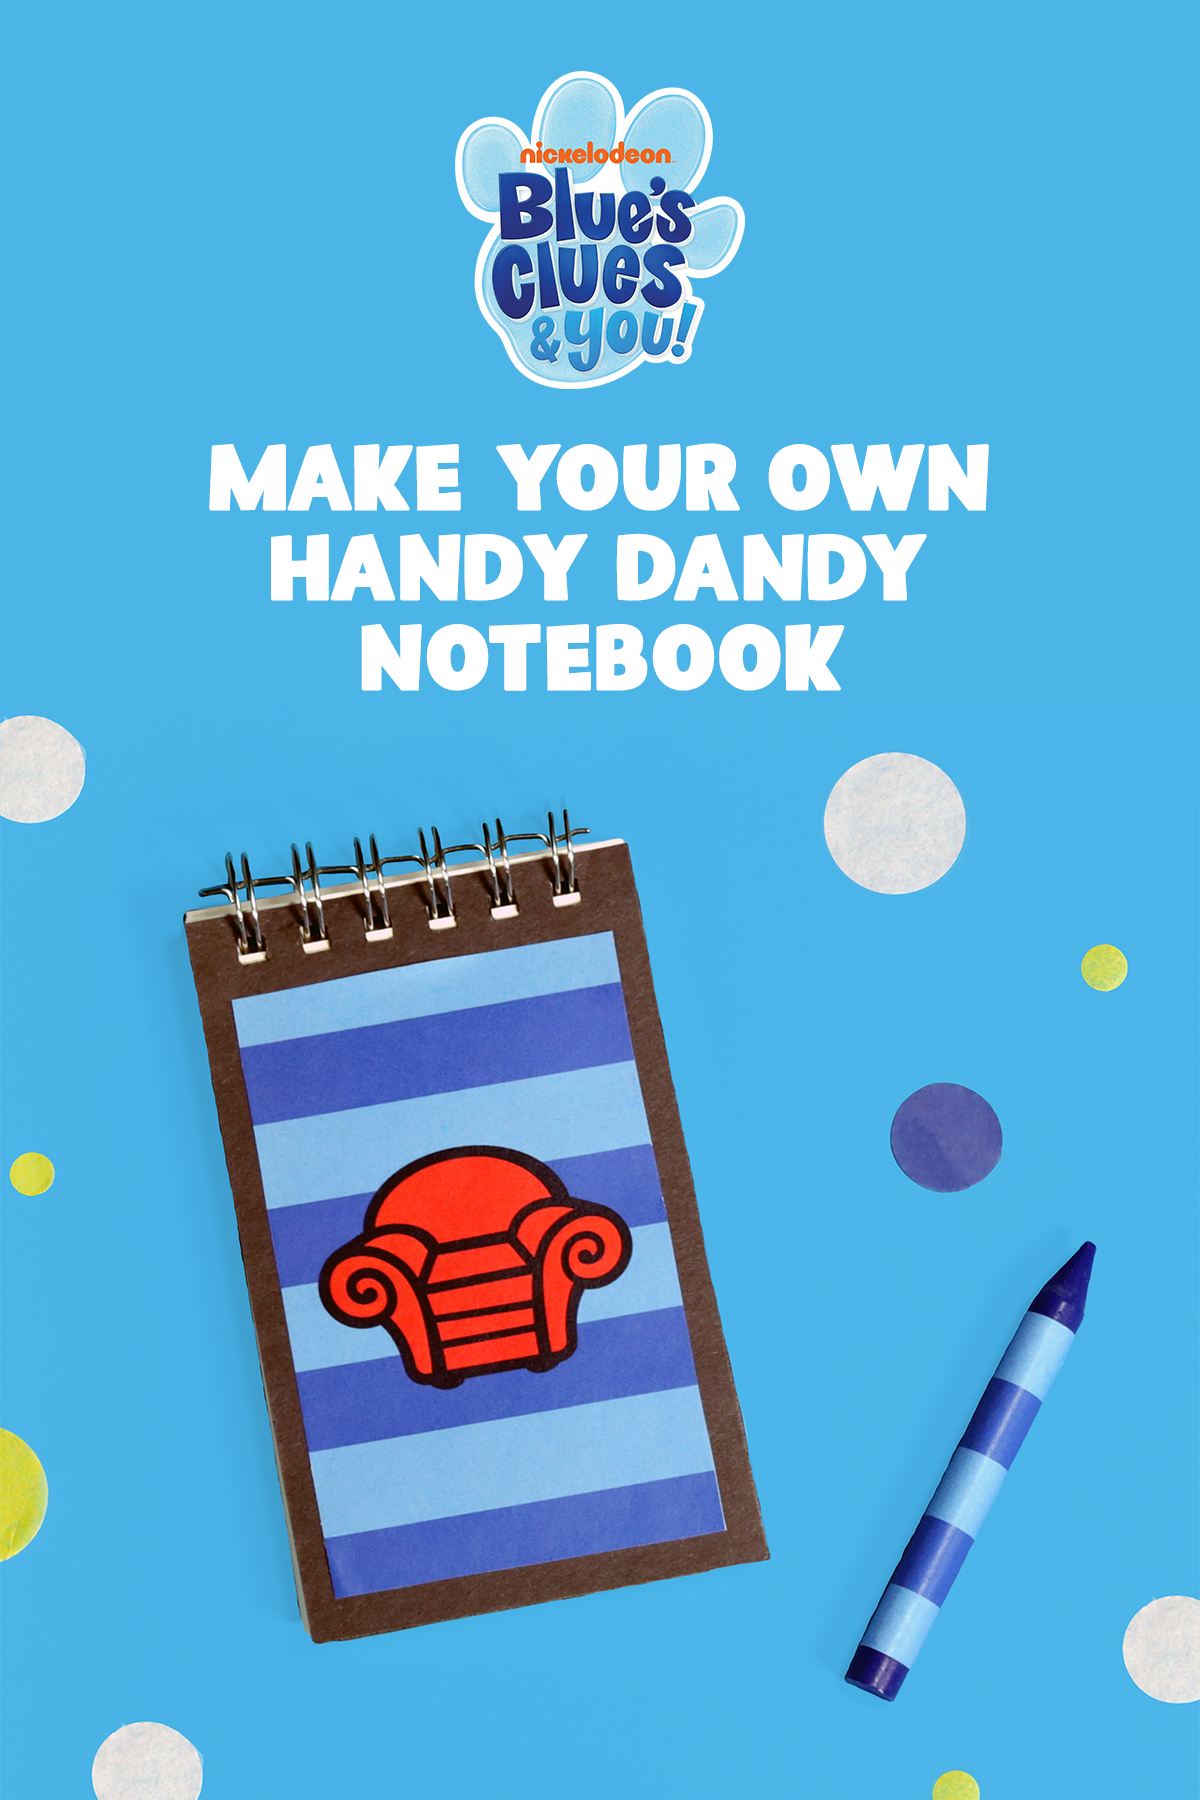 Blue's Clues DIY Handy Dandy Notebook Craft